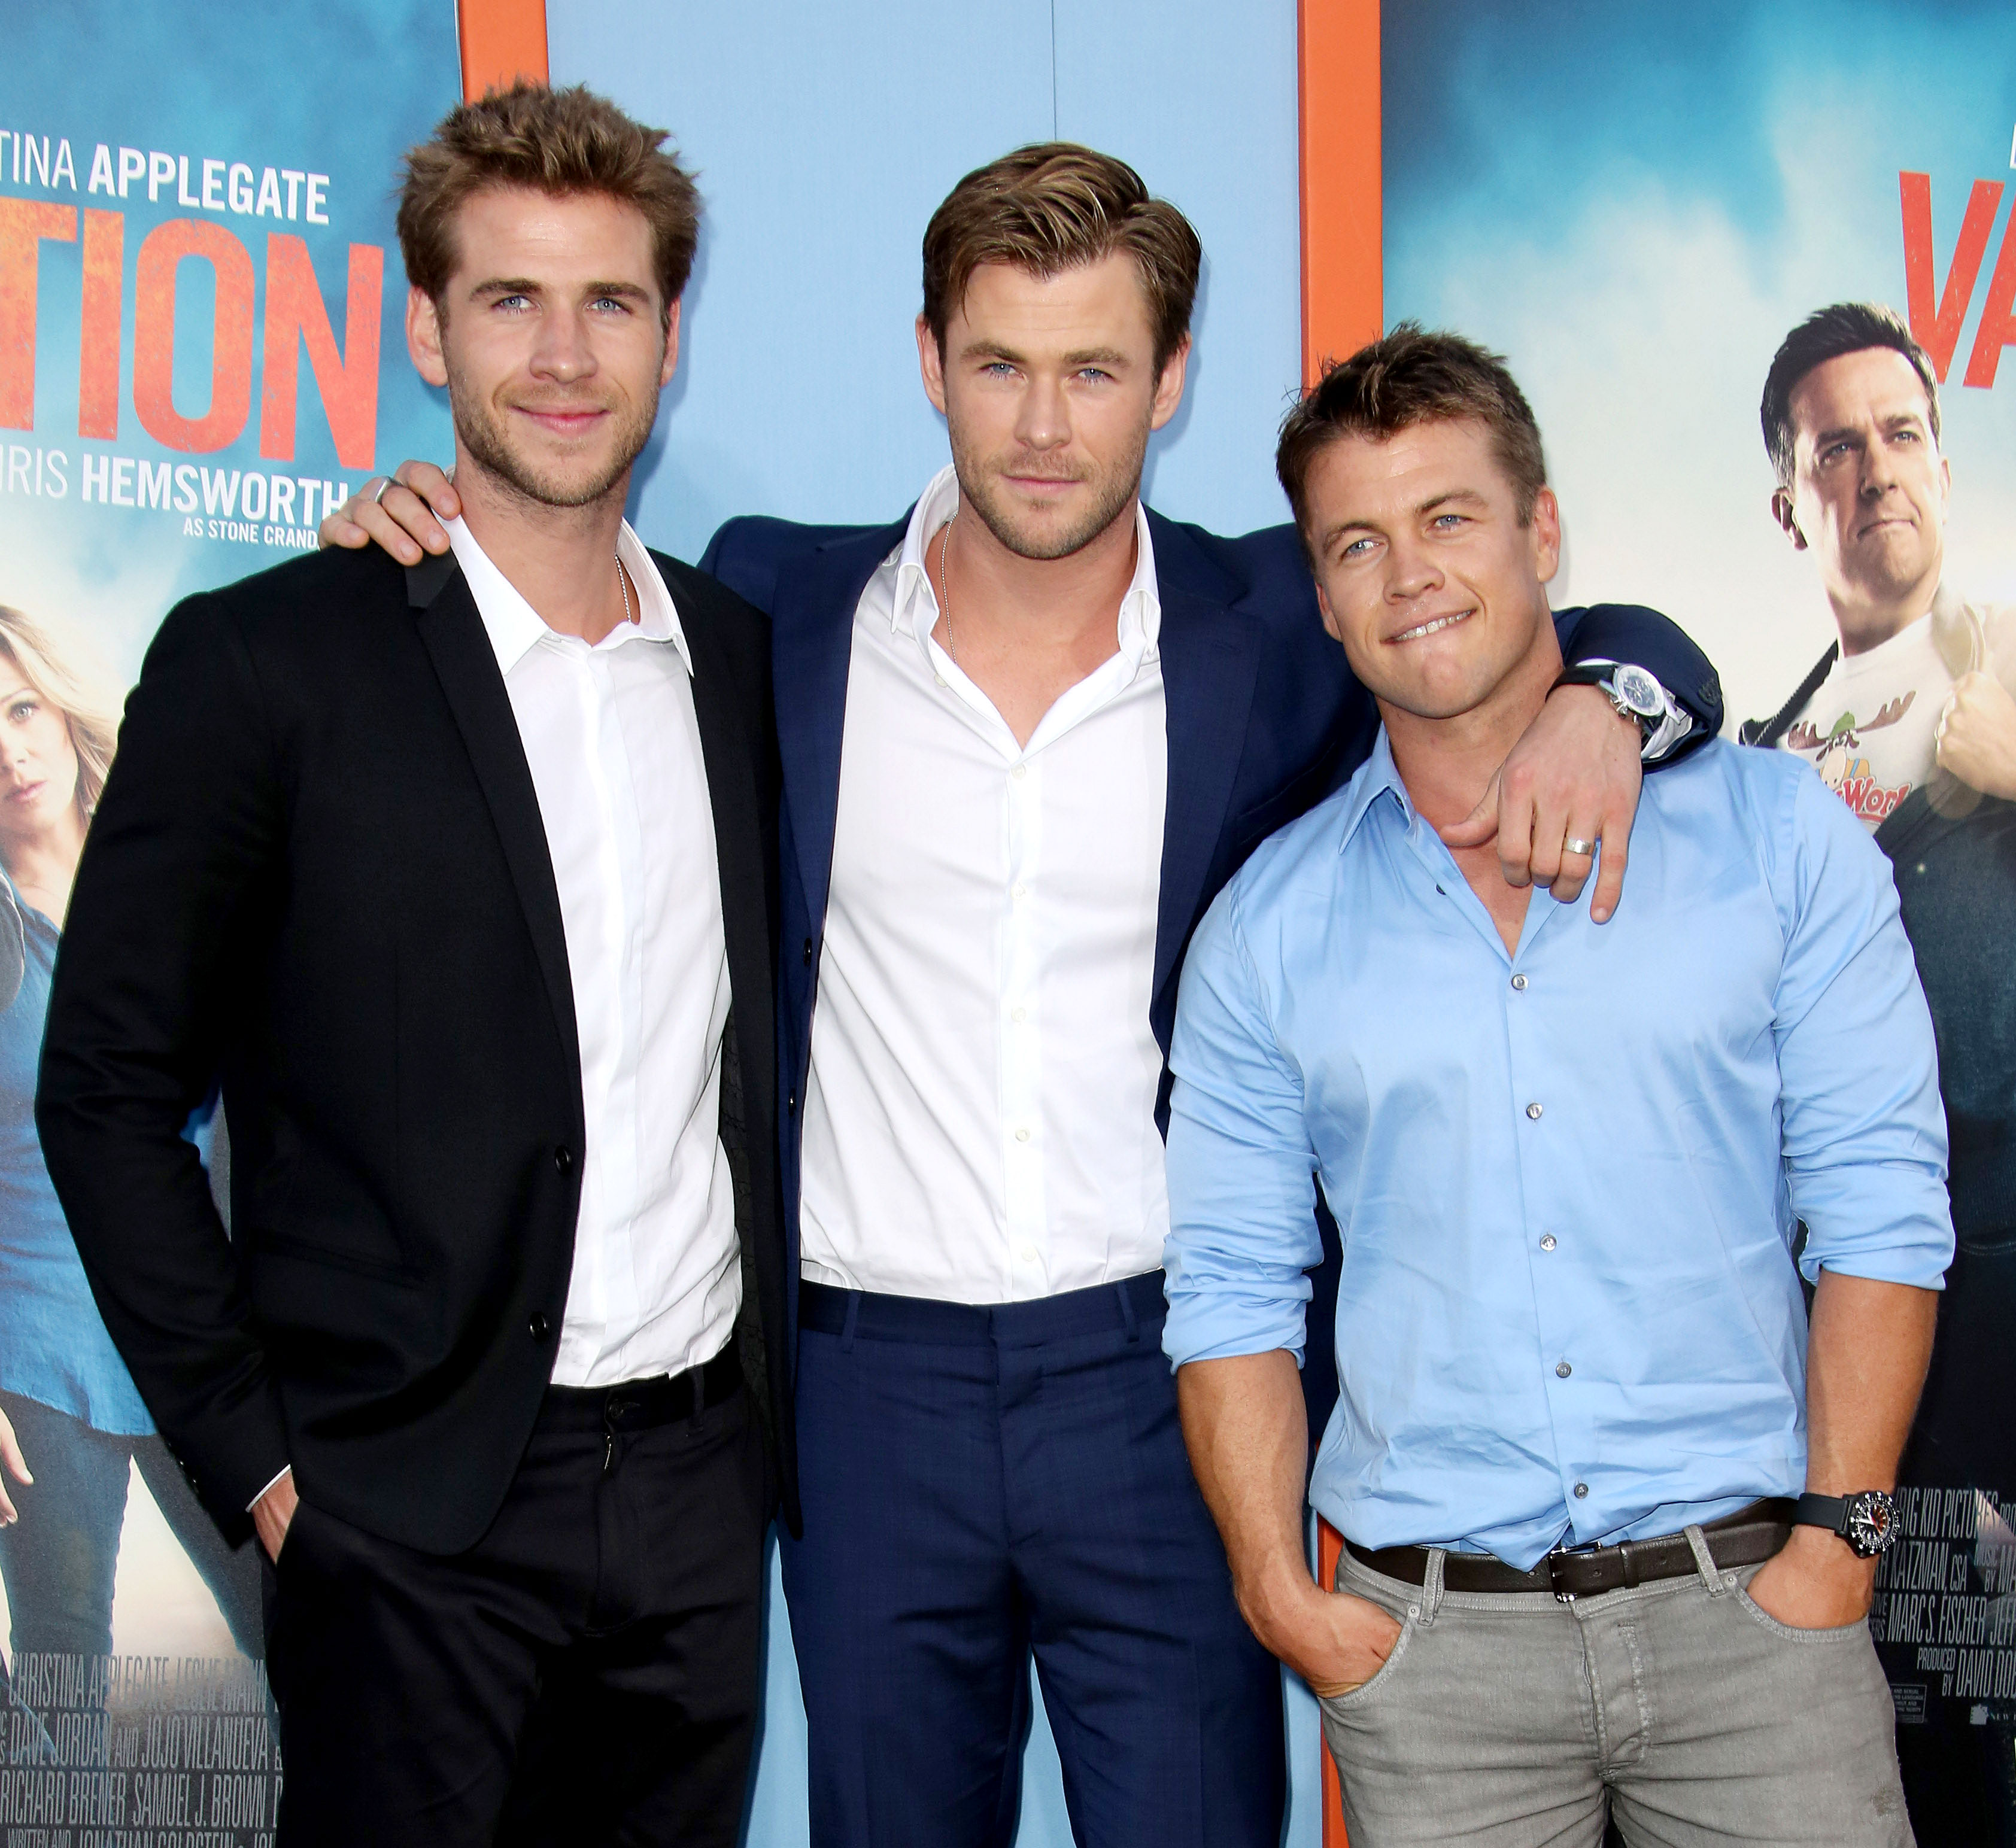 Maddison Brown Joked About Wanting To 'F--k' Hemsworth